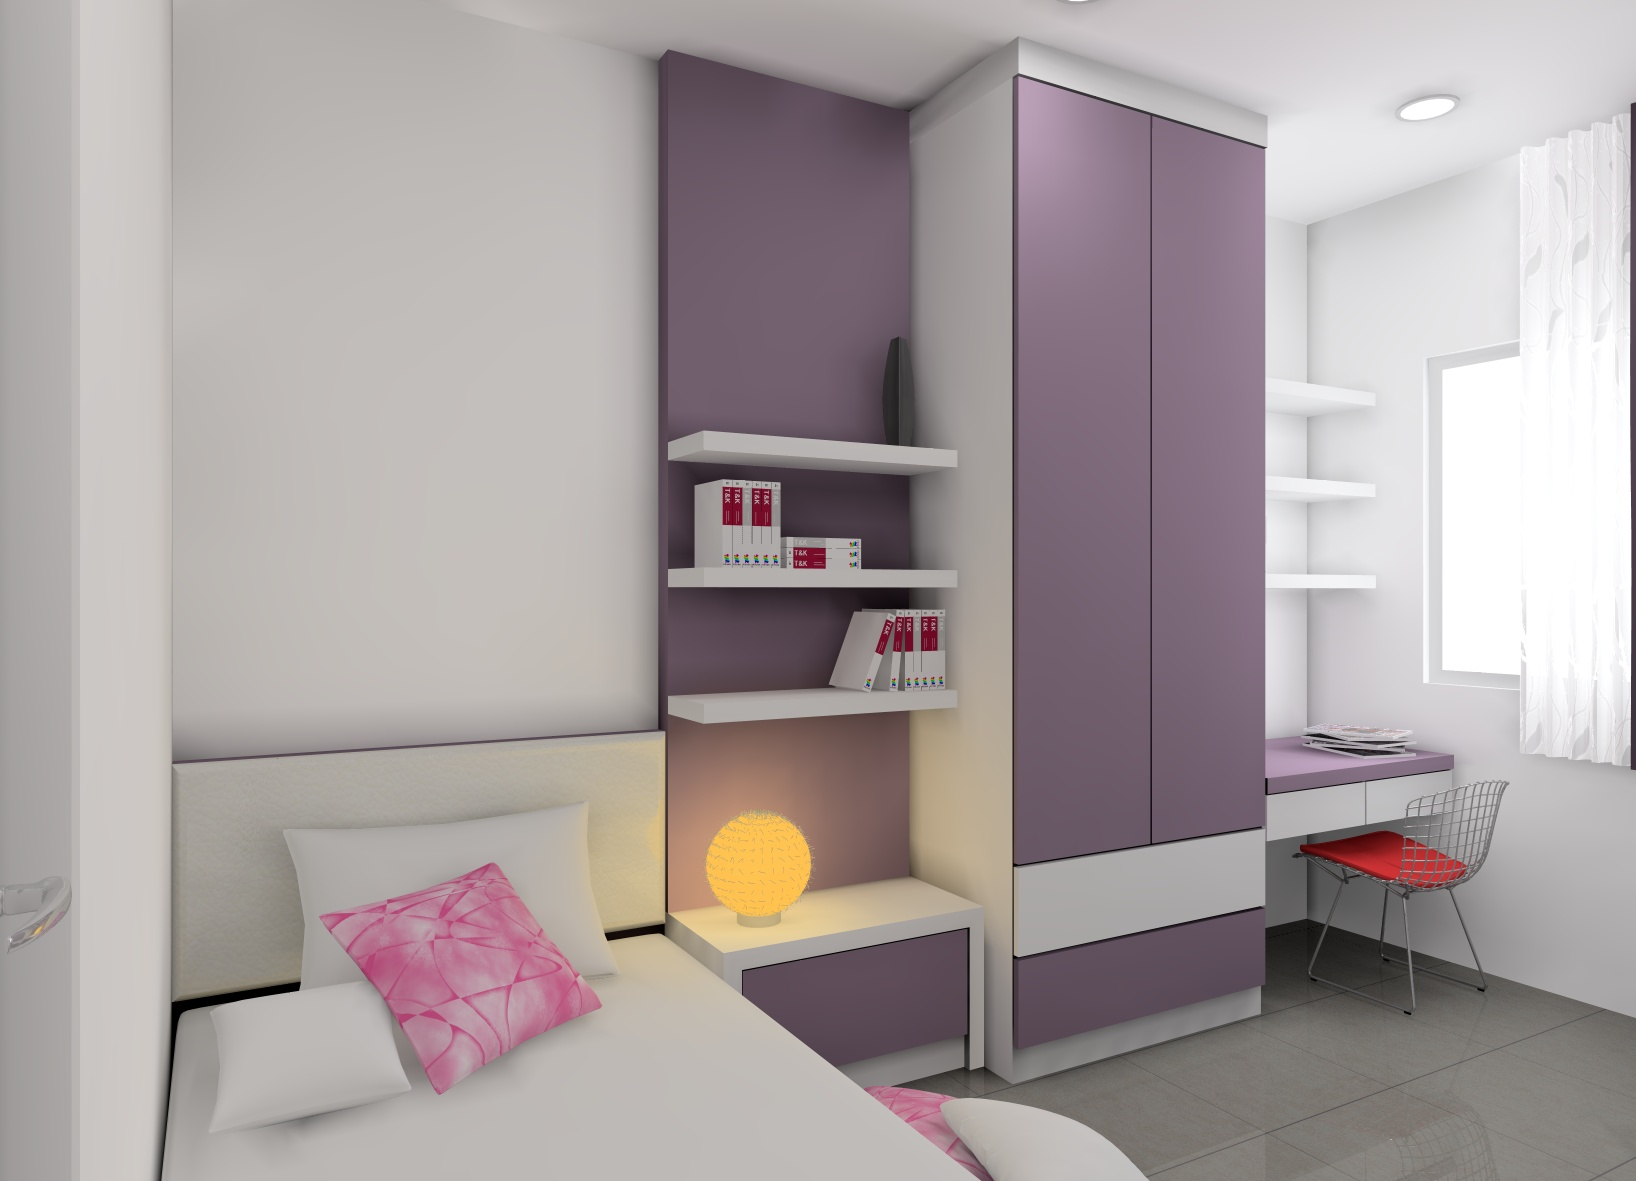 Bedroom Interior Design Ideas Malaysia 28 Images Simple Home Interior Design Malaysia M Wall